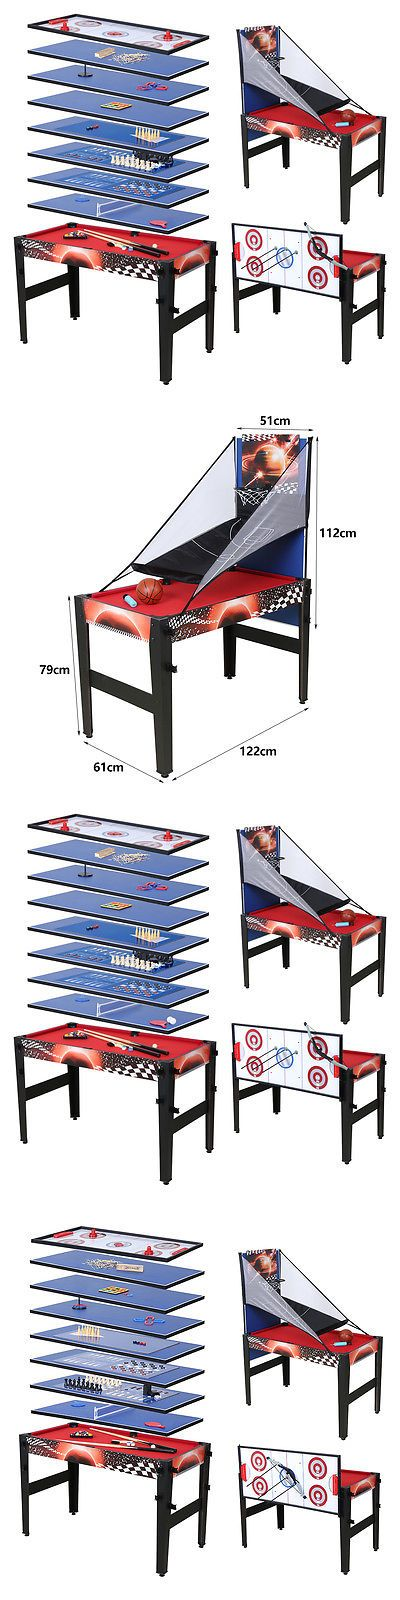 Other Indoor Games 36278: 14 In 1 4Ft Multi Game Table -> BUY IT NOW ONLY: $149.99 on eBay!